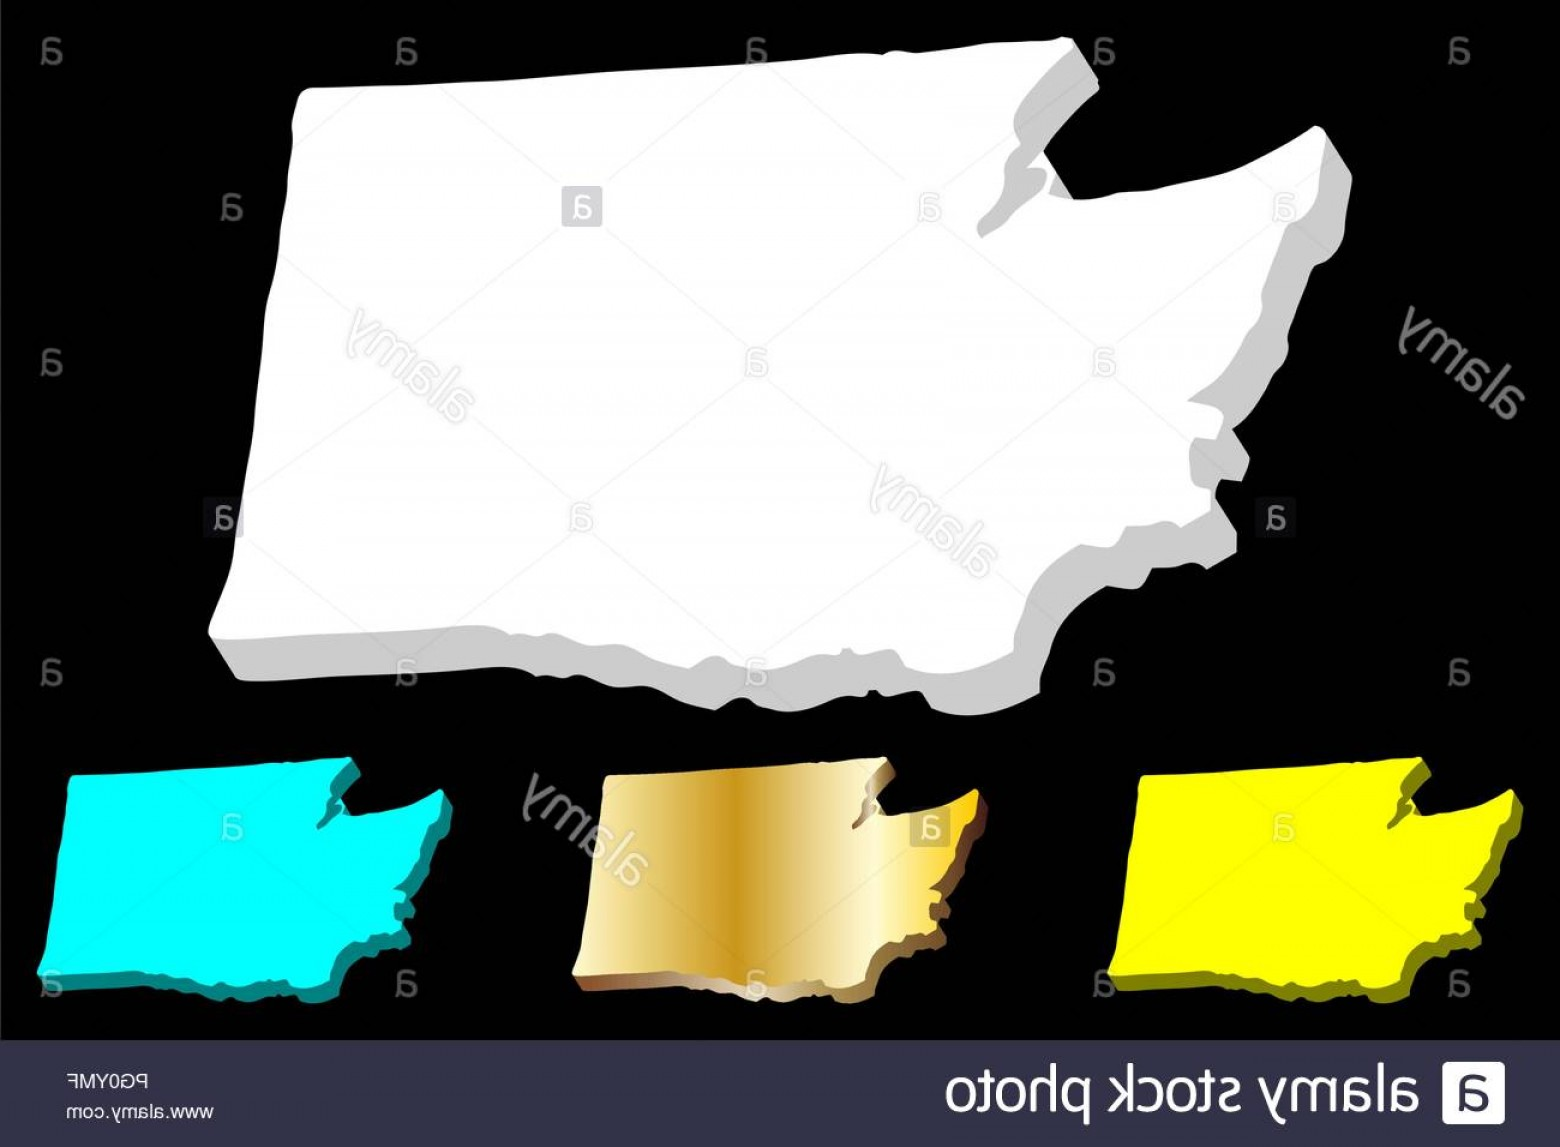 Washington State Vector: D Map Of Washington United States Of America The Evergreen State White Yellow Blue And Gold Vector Illustration Image